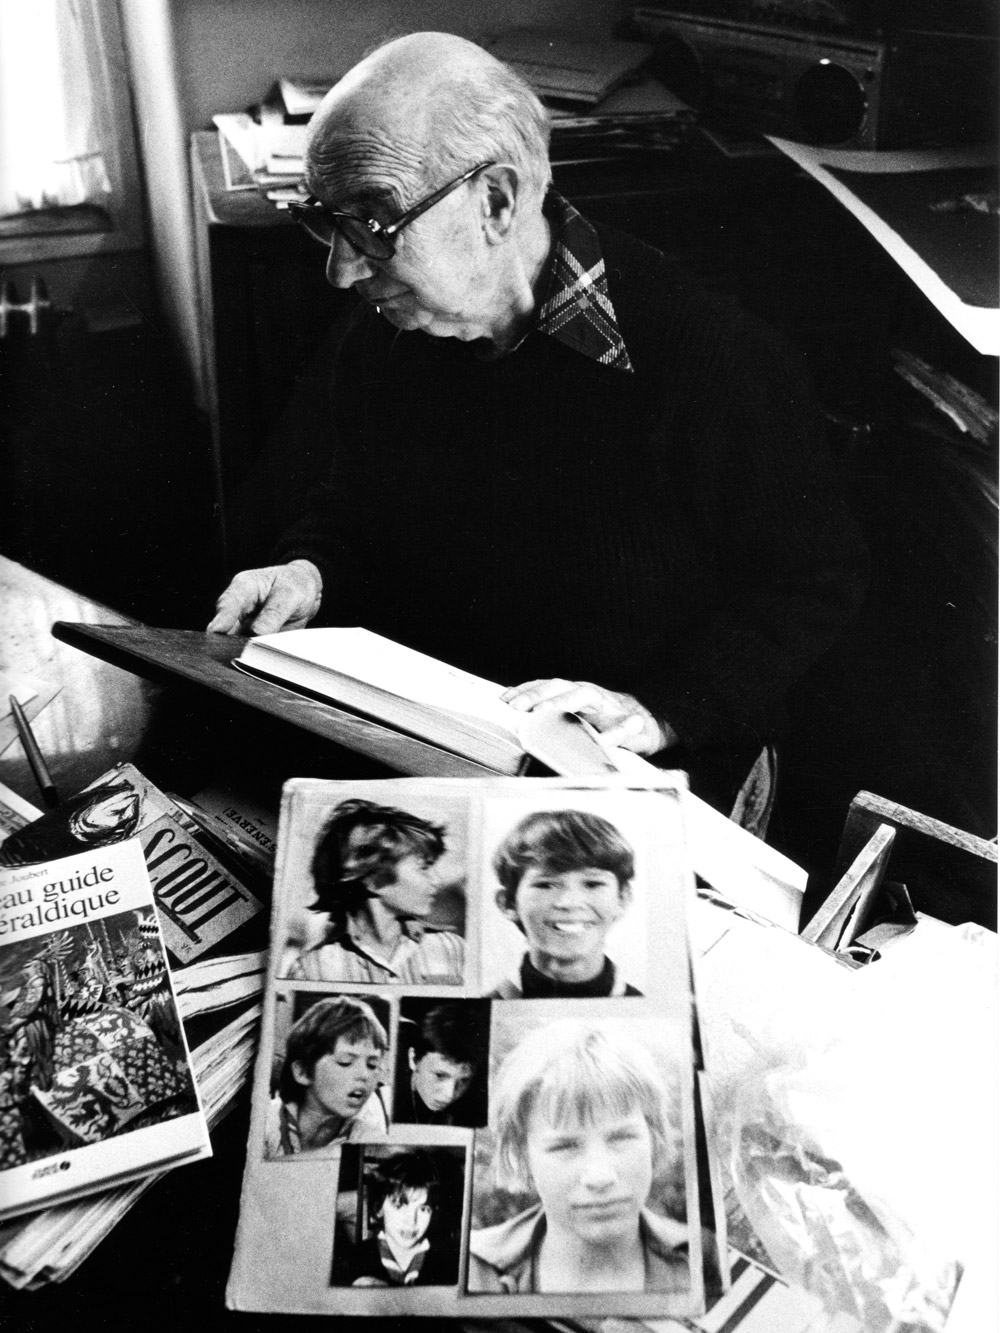 Pierre Joubert, photographed in the 1980s by Mark Silver